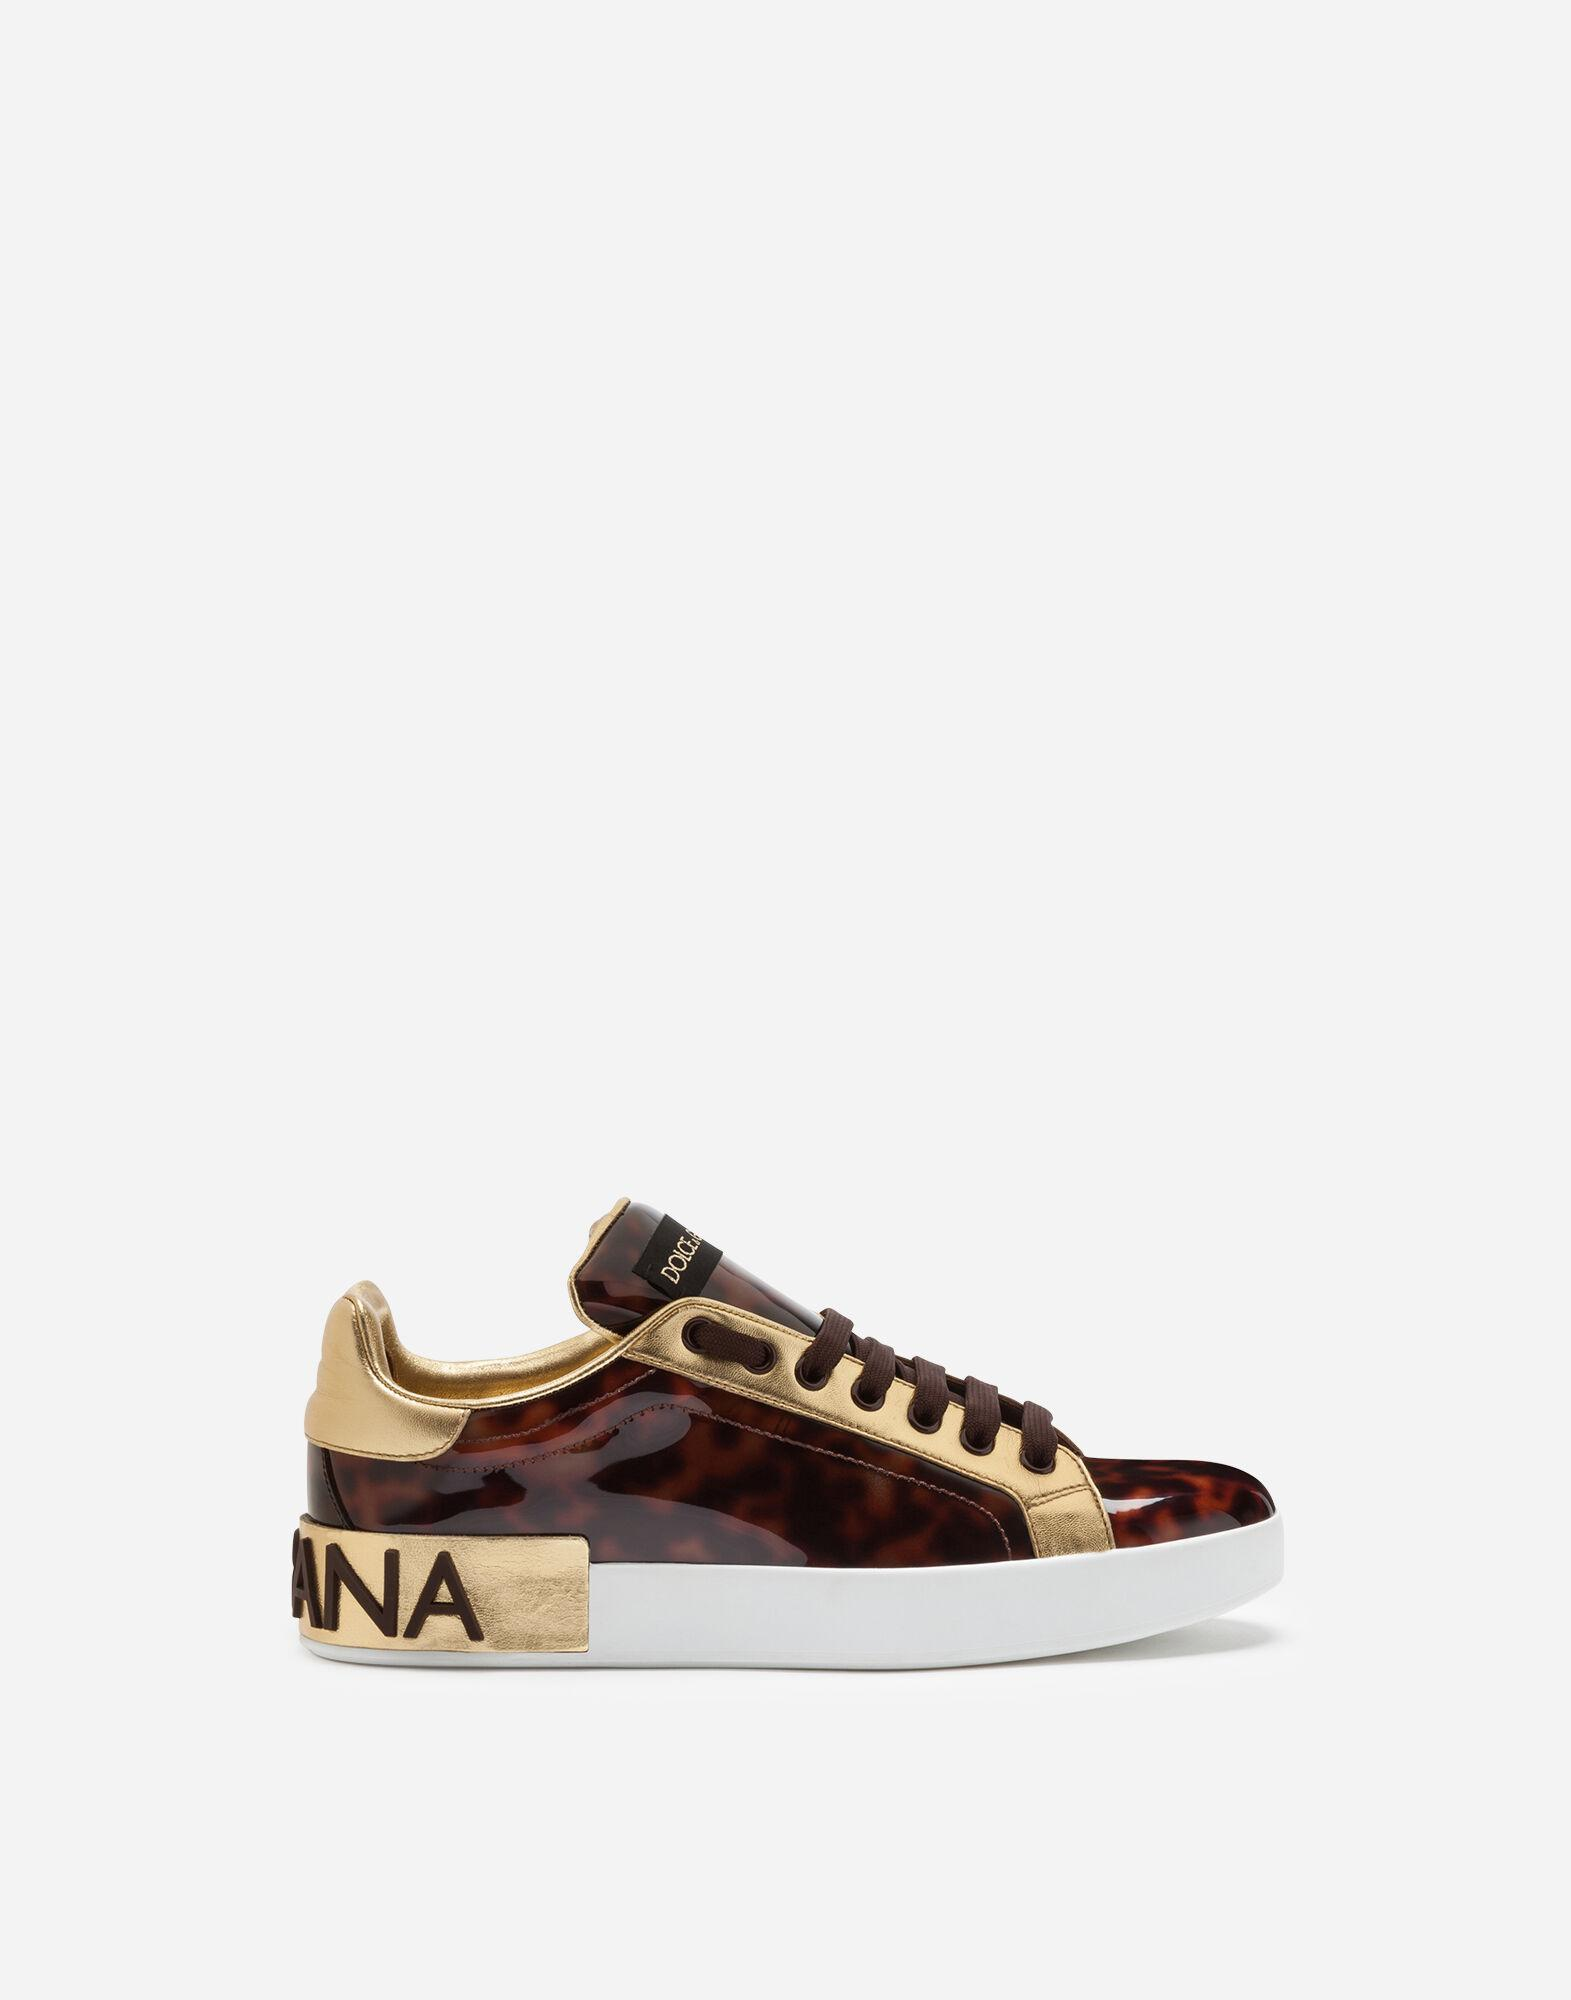 Mother-of-pearl Portofino print patent leather sneakers